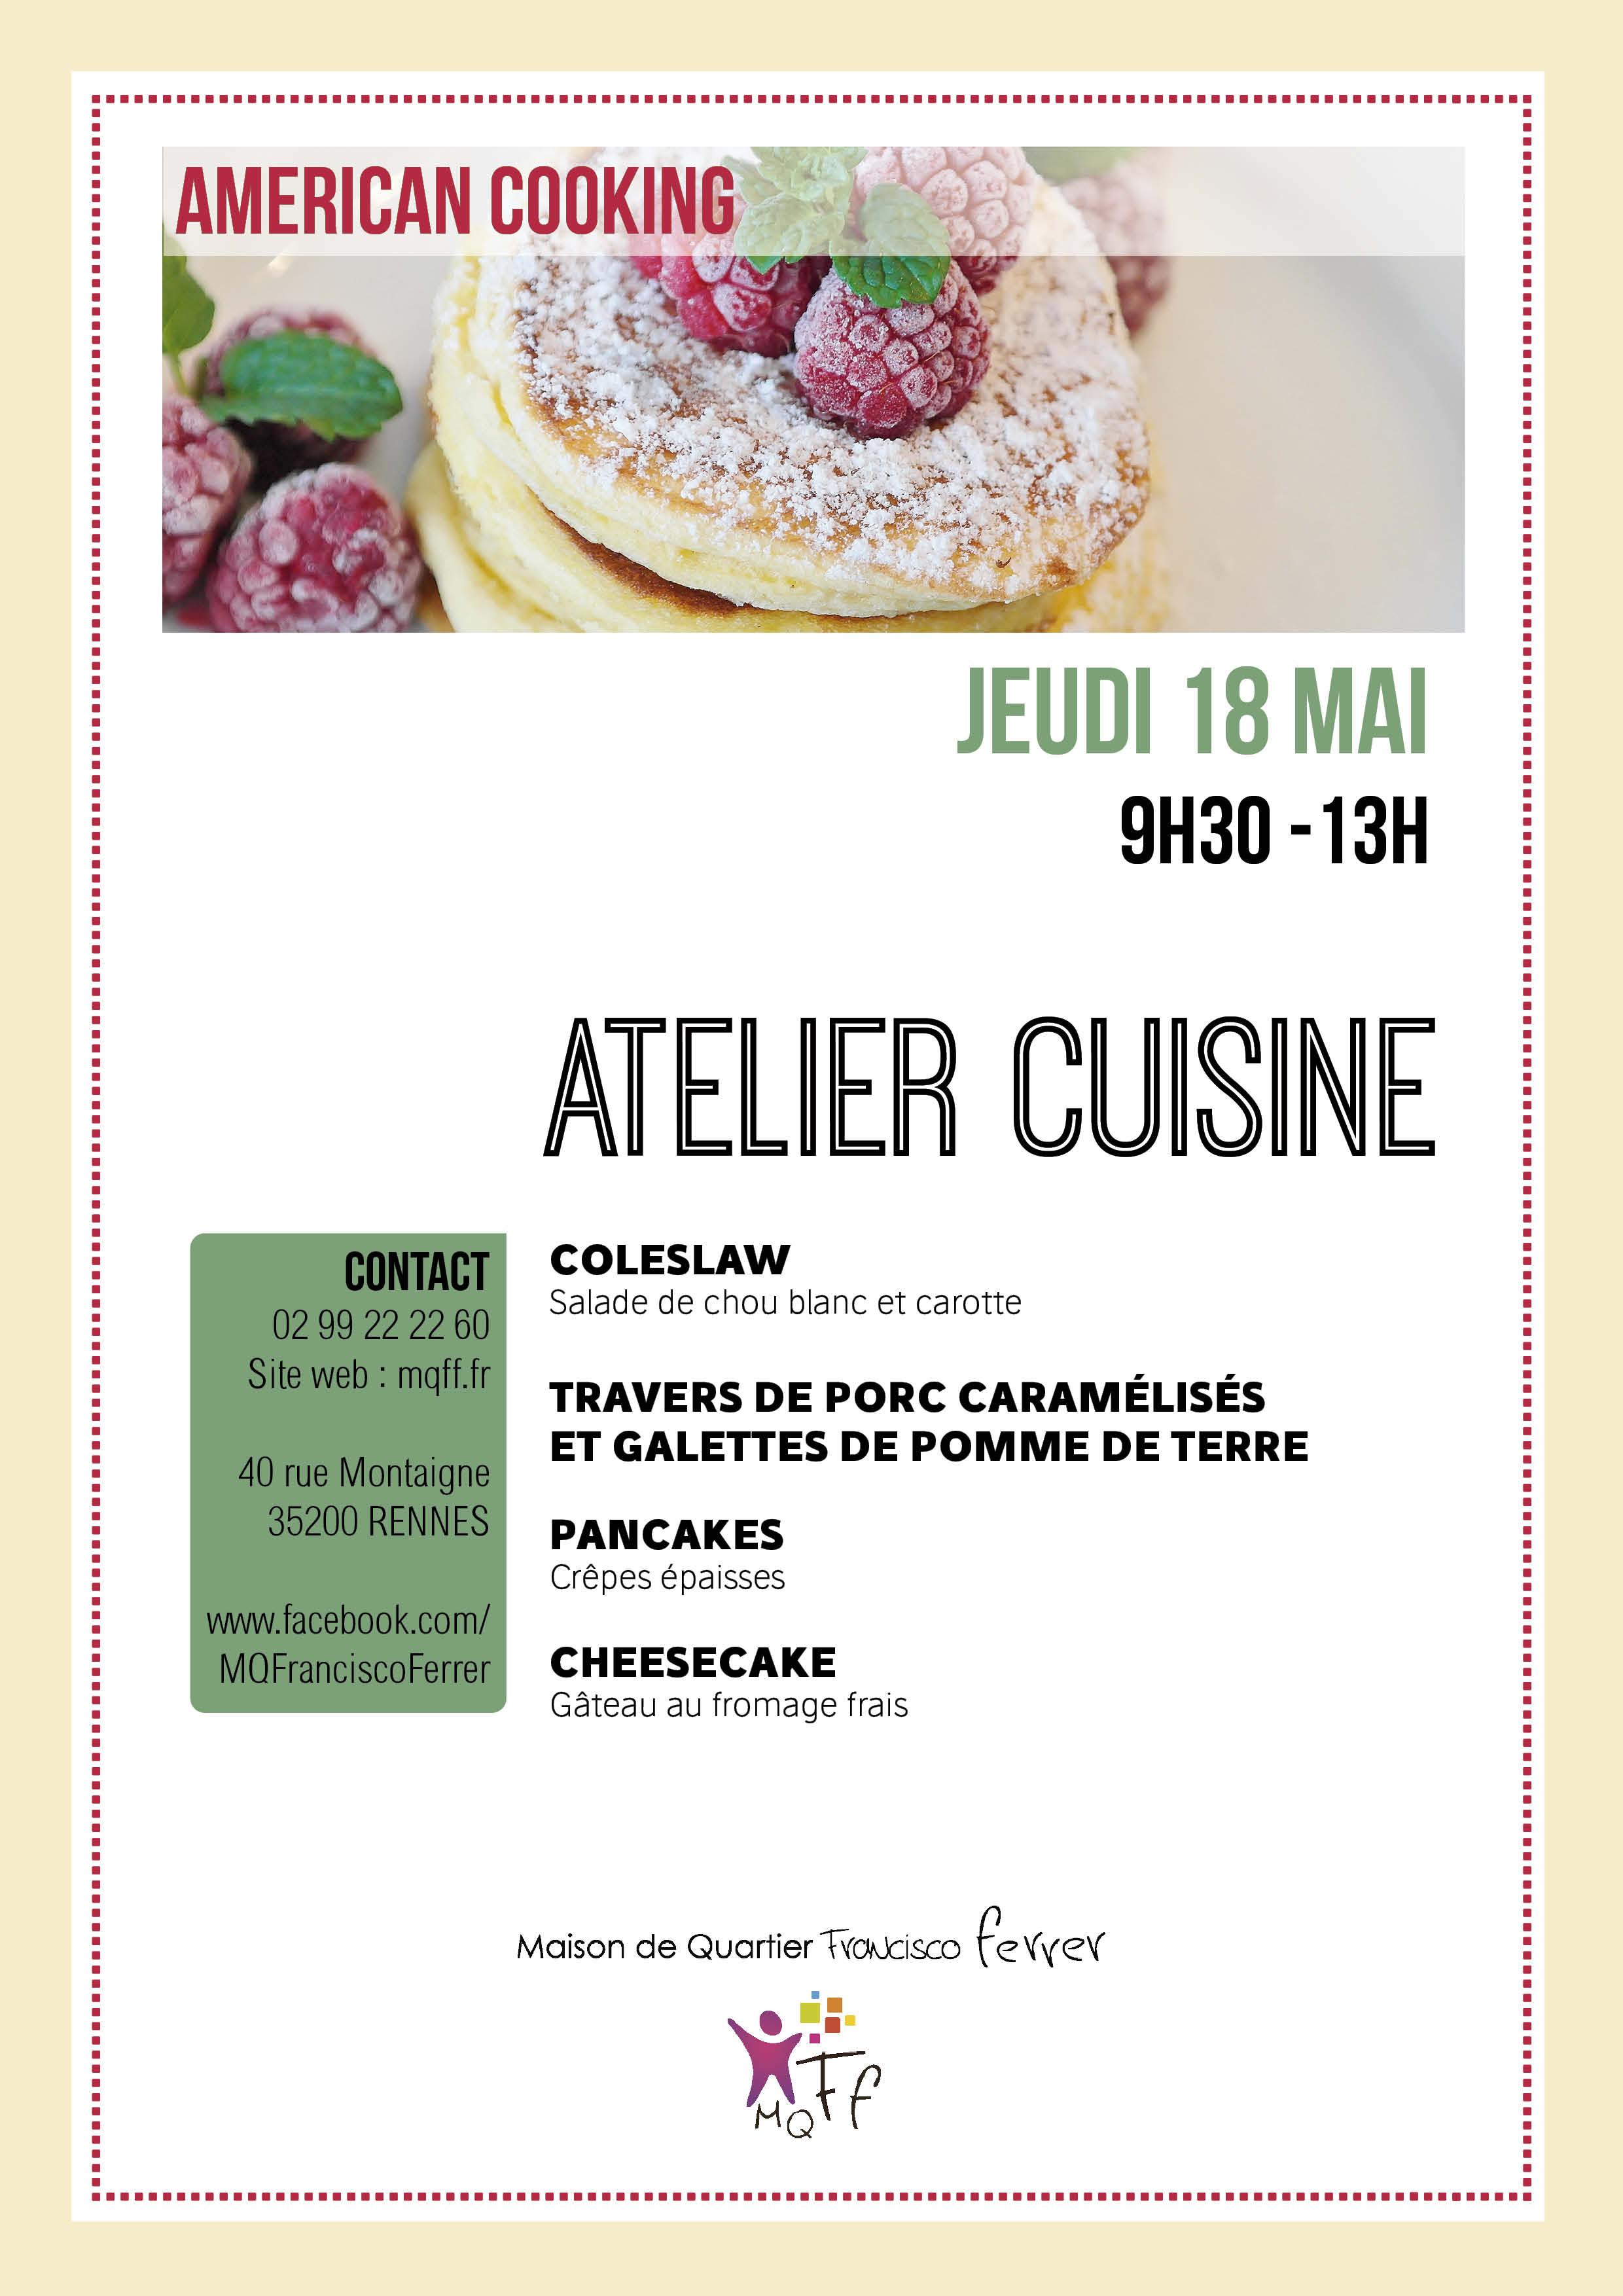 17-05-04_AFFICHE-american cooking.jpg